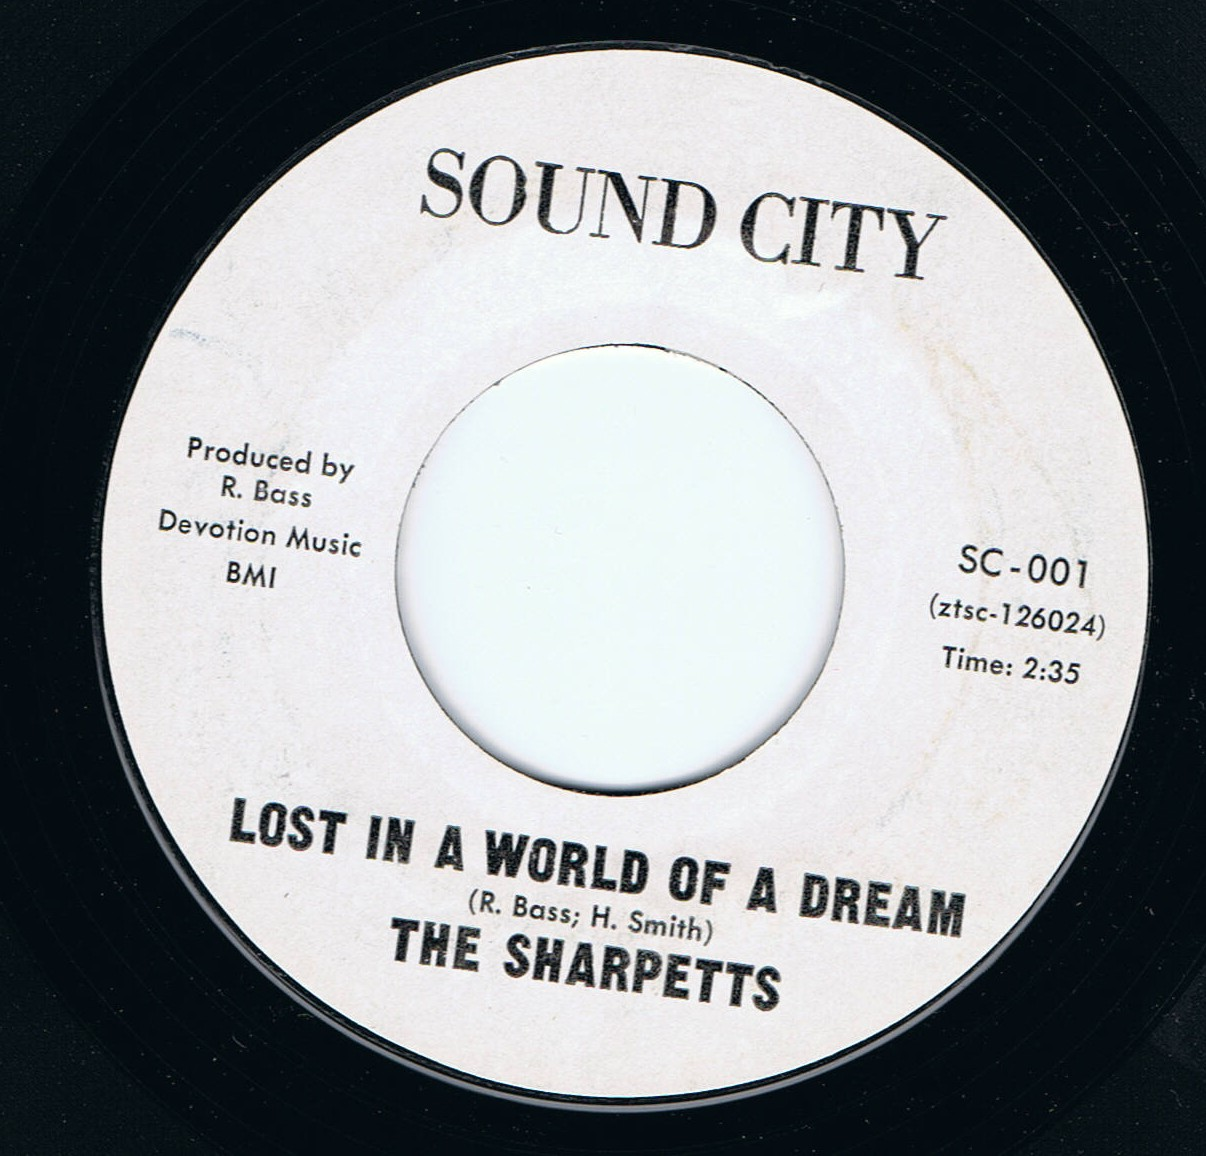 The Sharpetts Lost In A World Of A Dream Sound City 2nd MINT